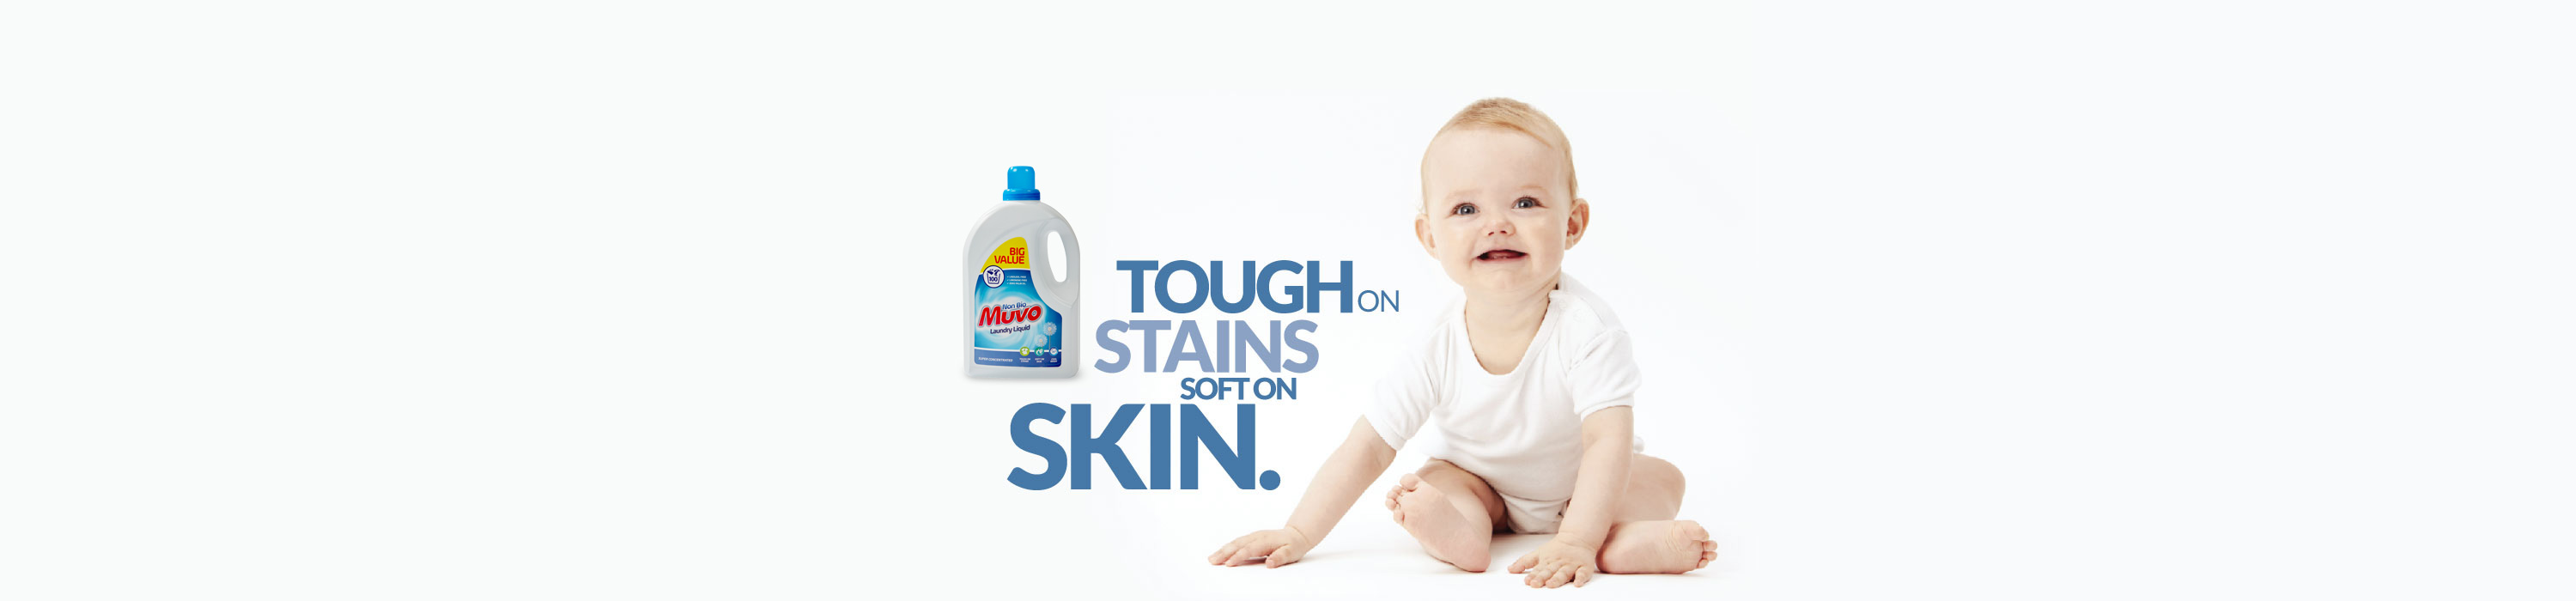 Tough on Stains